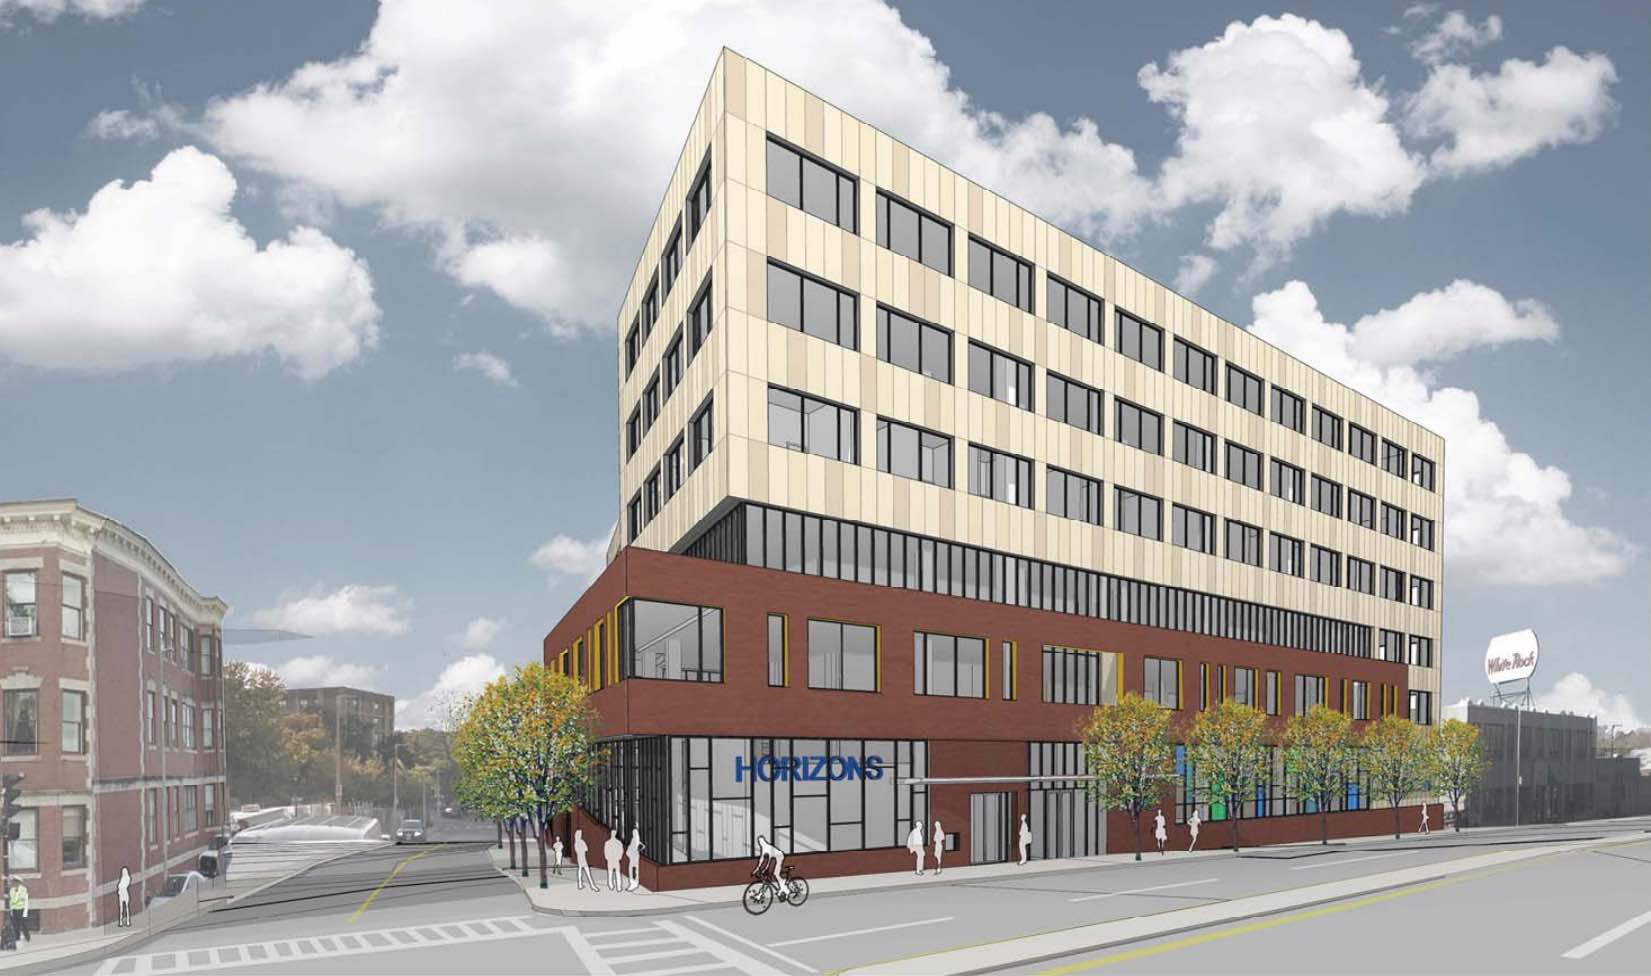 1785 columbus avenue office retail development roxbury watermark development